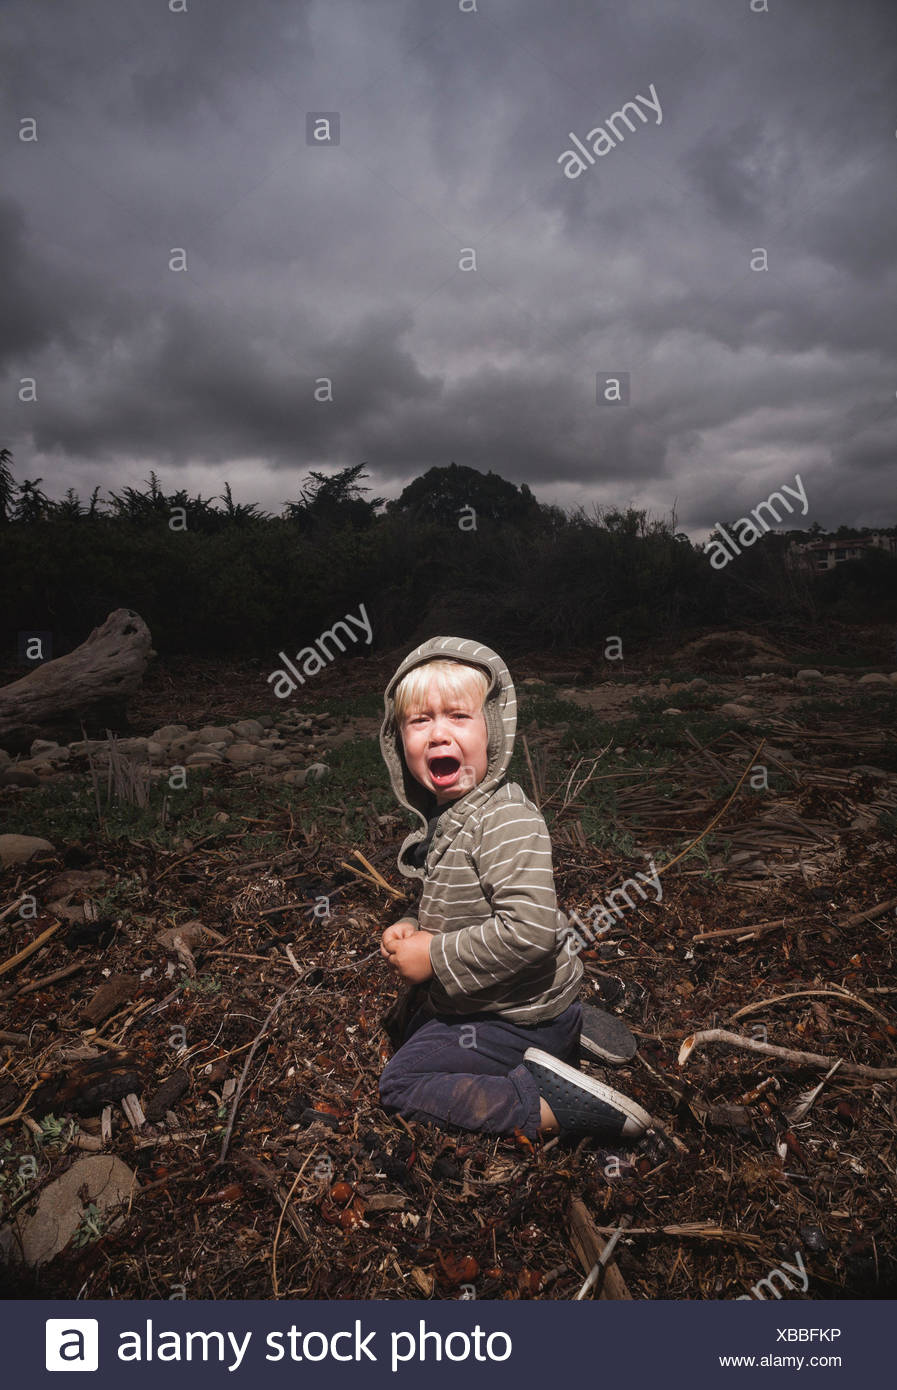 Young boy kneeling on ground crying against stormy sky - Stock Image